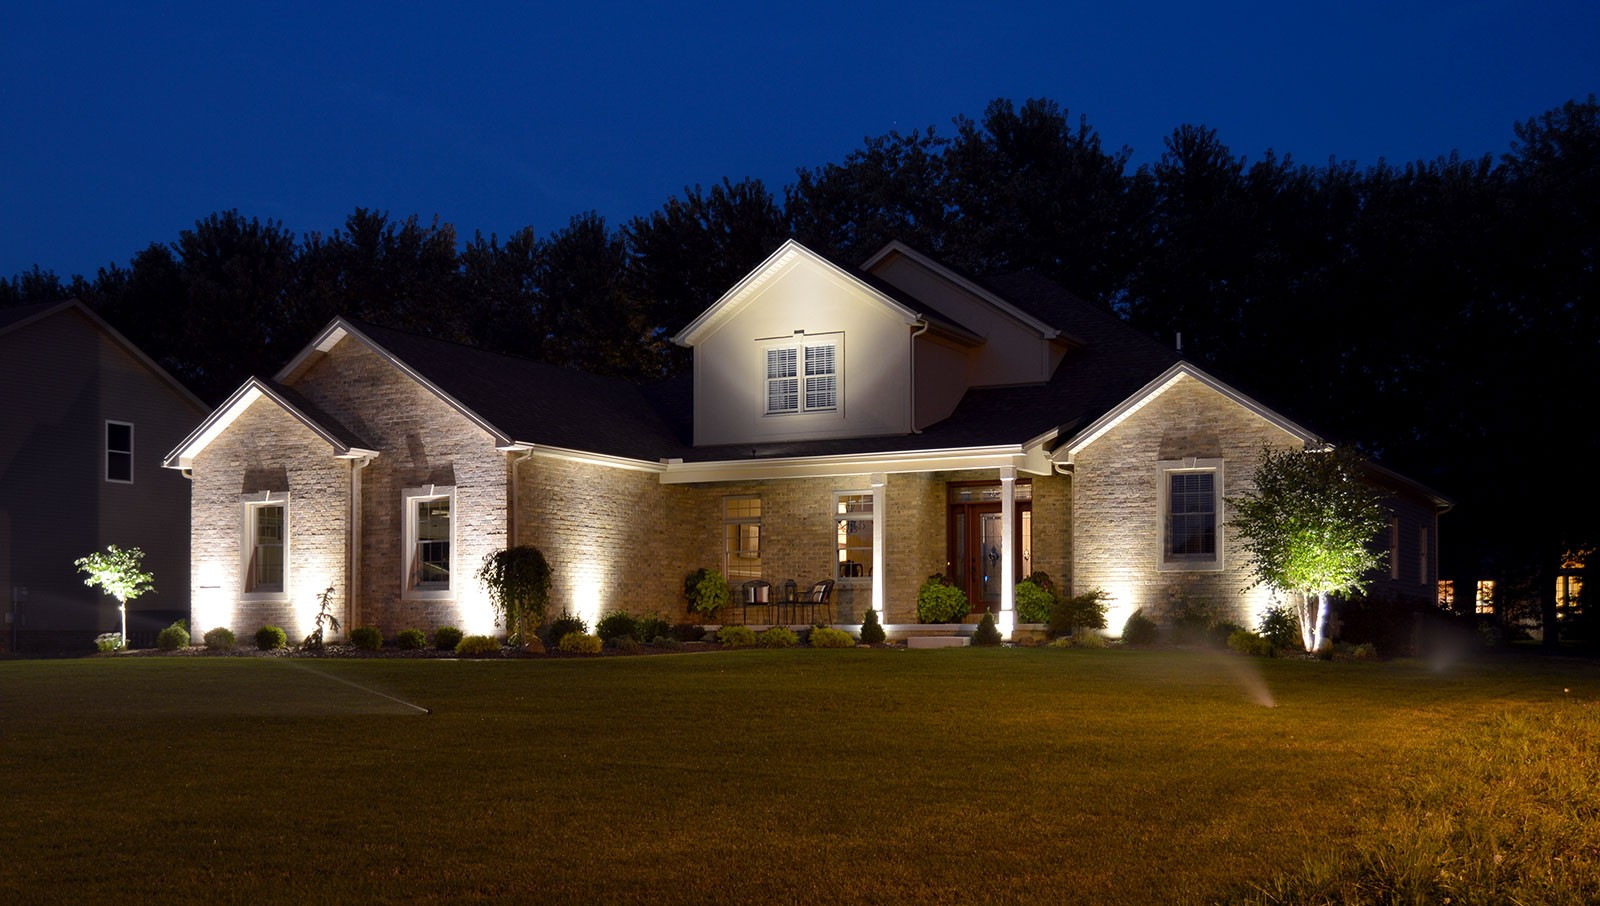 Outdoor lighting-Brandon FL Outdoor Lighting Installers-We Offer Outdoor Lighting Services, Landscape Lighting, Low Voltage Lighting, Outdoor LED landscape Lighting, Holiday Lighting, Christmas Lighting, Tree Lighting, Canopy Lighting, Residential outdoor Lighting, Commercial outdoor Lighting, Safety Lighting, Path and Garden Lighting, Mini lights and flood lights, Landscape Lighting installation, Outdoor spot lights, Outdoor LED garden Lighting, Dock Lighting, Accent lights, Deck and patio lights, Security lights, Underwater Lighting, Tree upLighting, Outdoor Lighting repair services, and more.